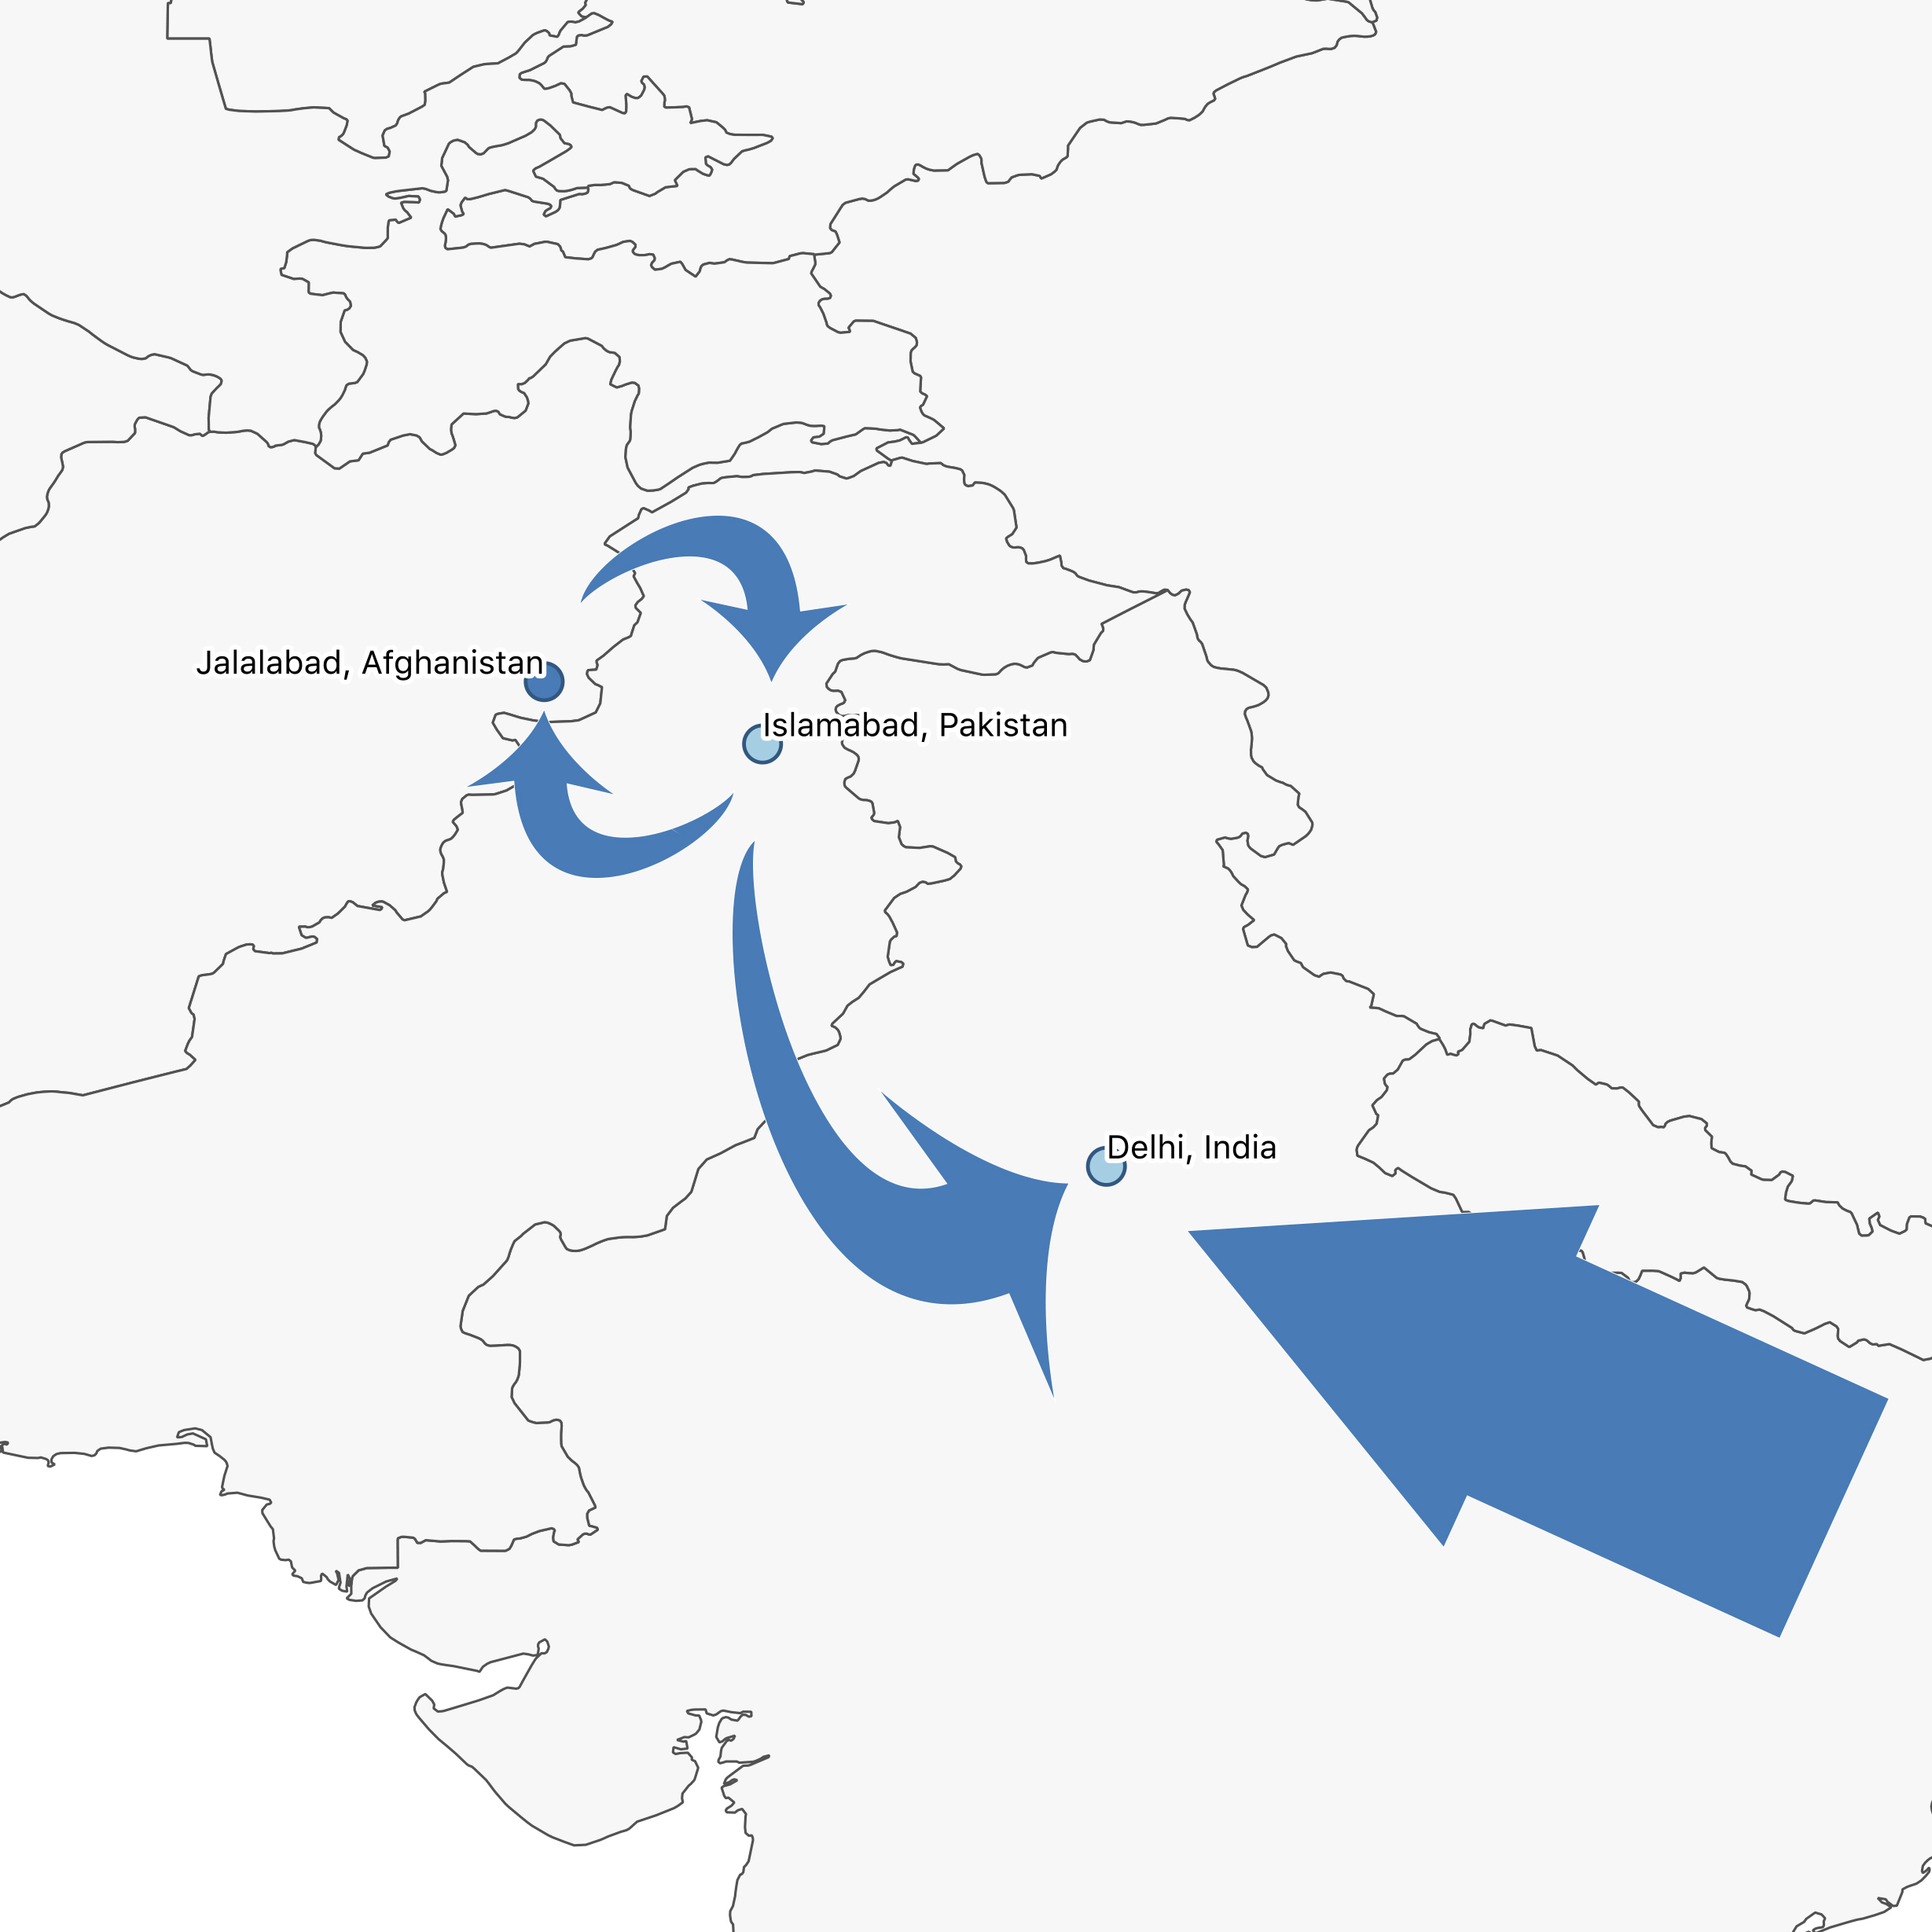 Jalalabad is both a host city for returnees, and a source of migration in the South Asia region. Click the map to learn more about the region, and to read other RIT case reports from cities and towns linked together by these movements of people.